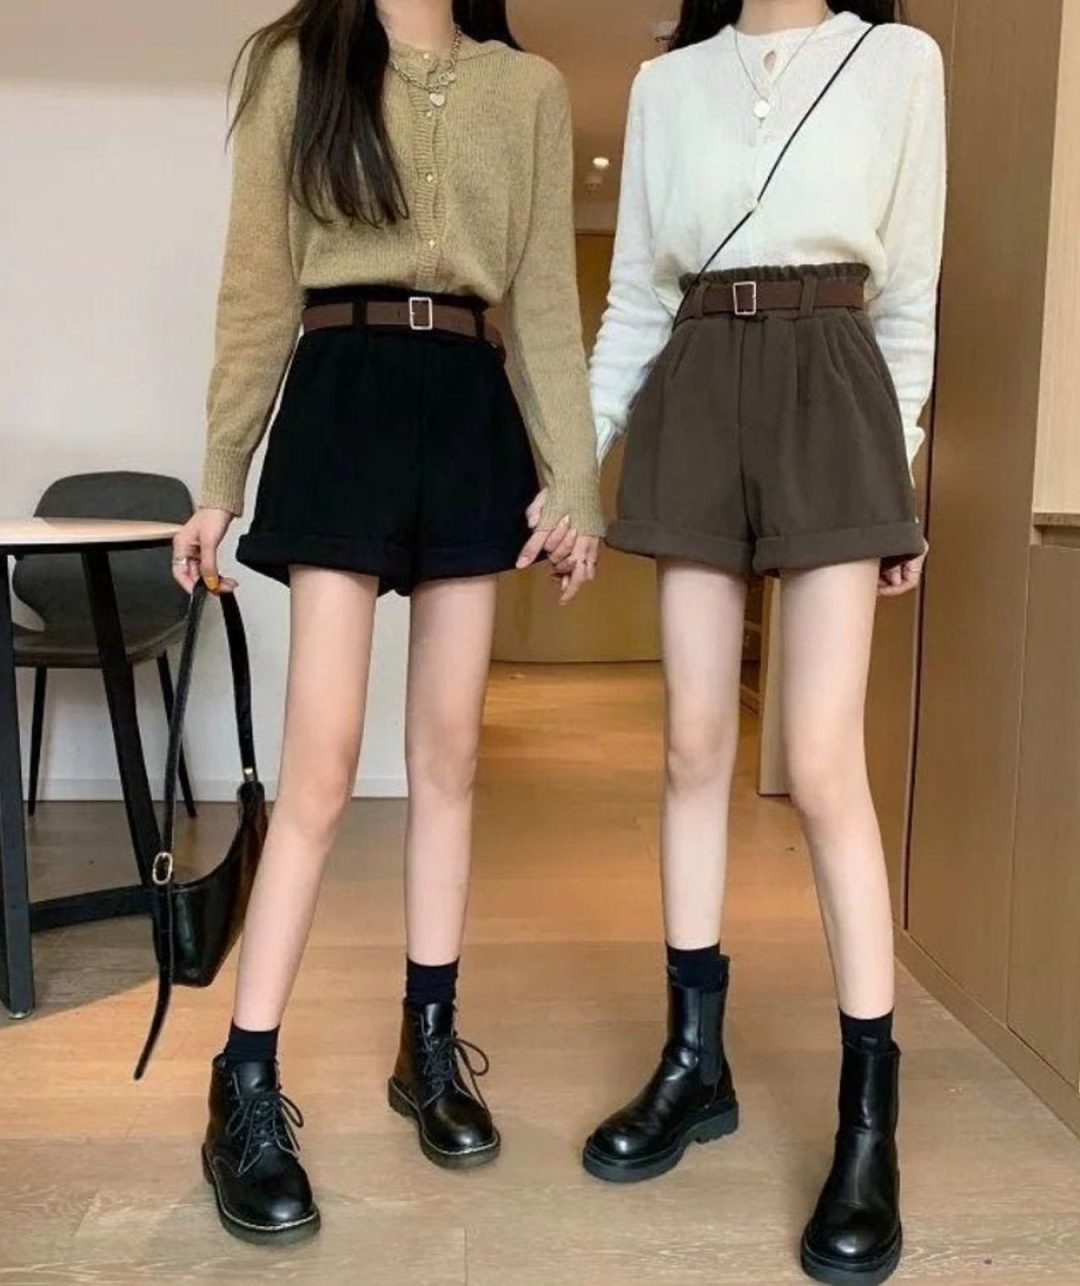 Dark academia shorts with Doc Martens boots